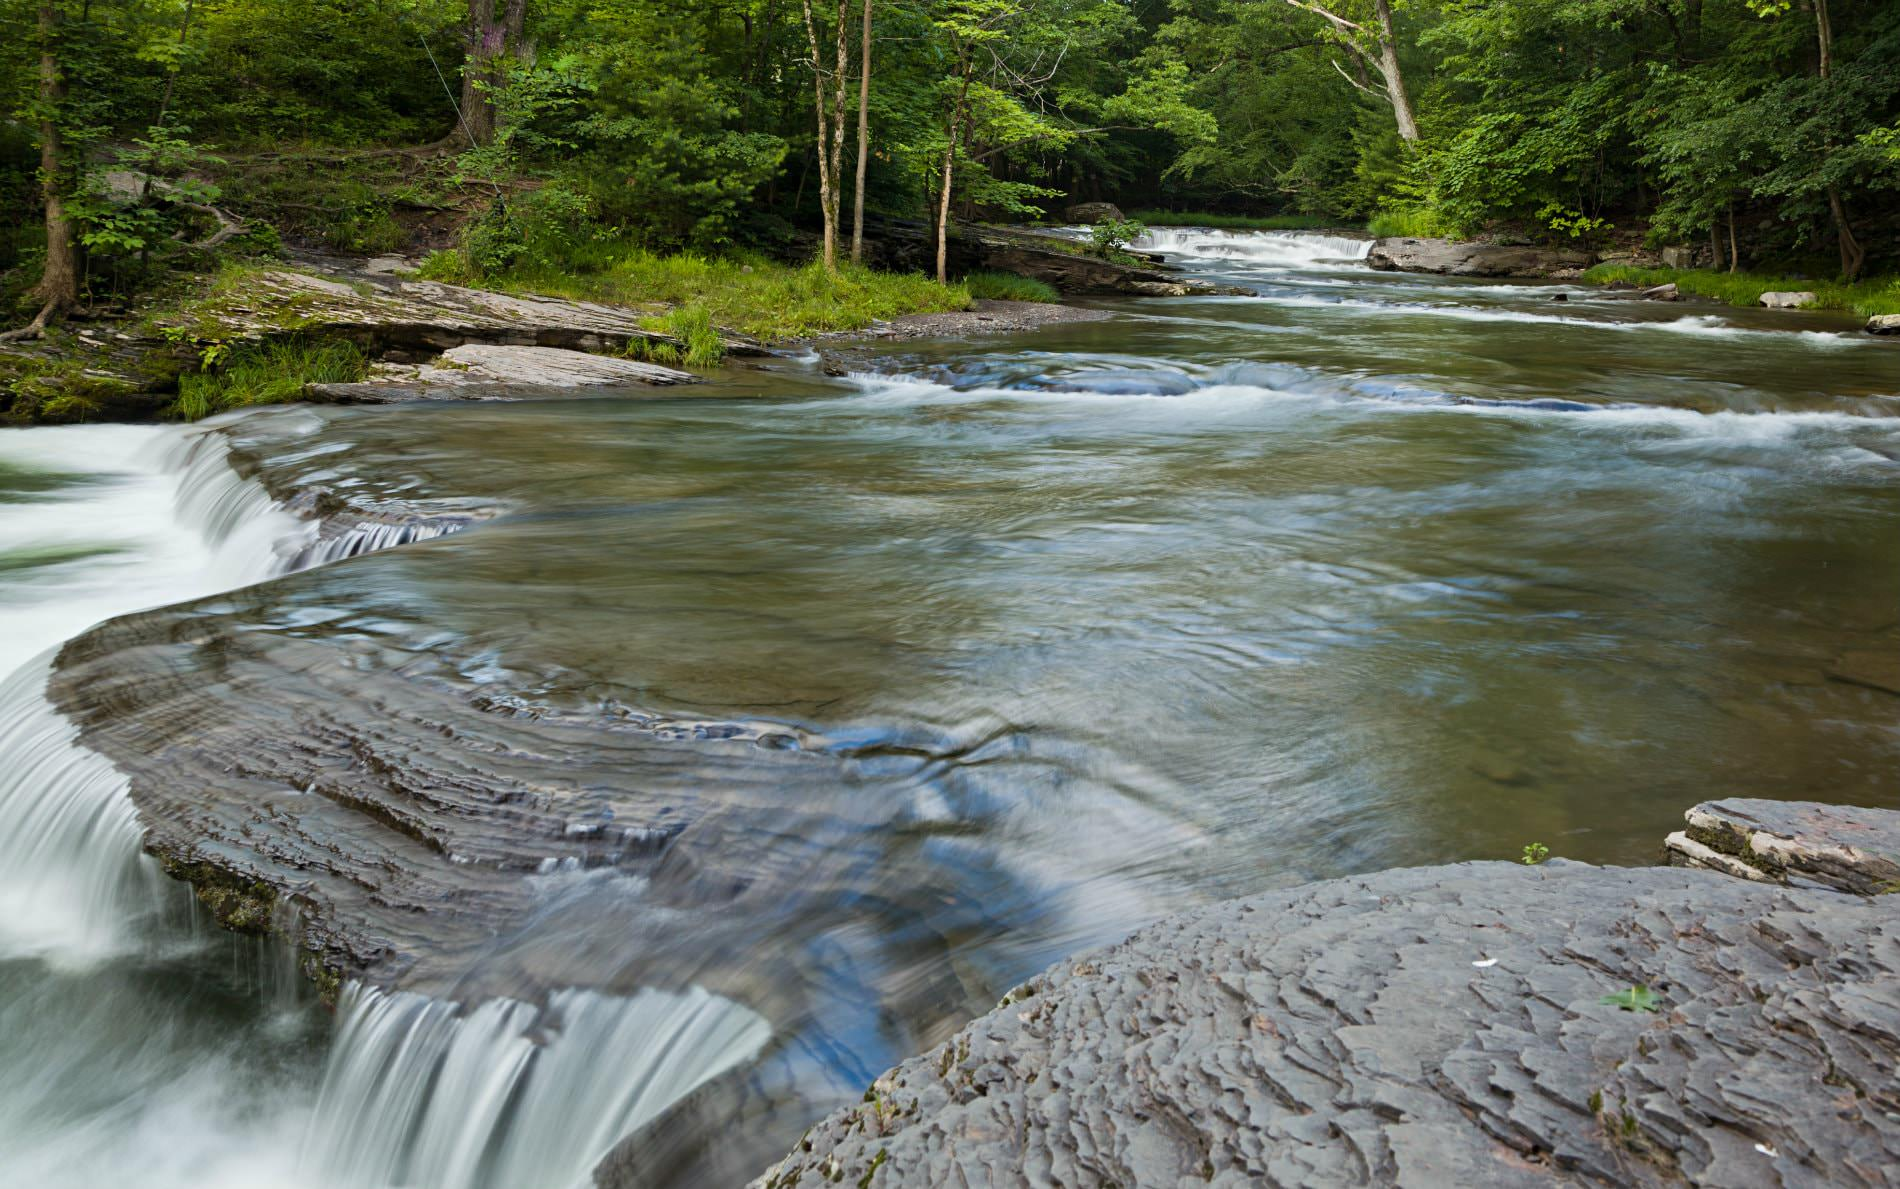 Flowing, rippling stream cascading over a rocky ledge surrounded by lush green woods